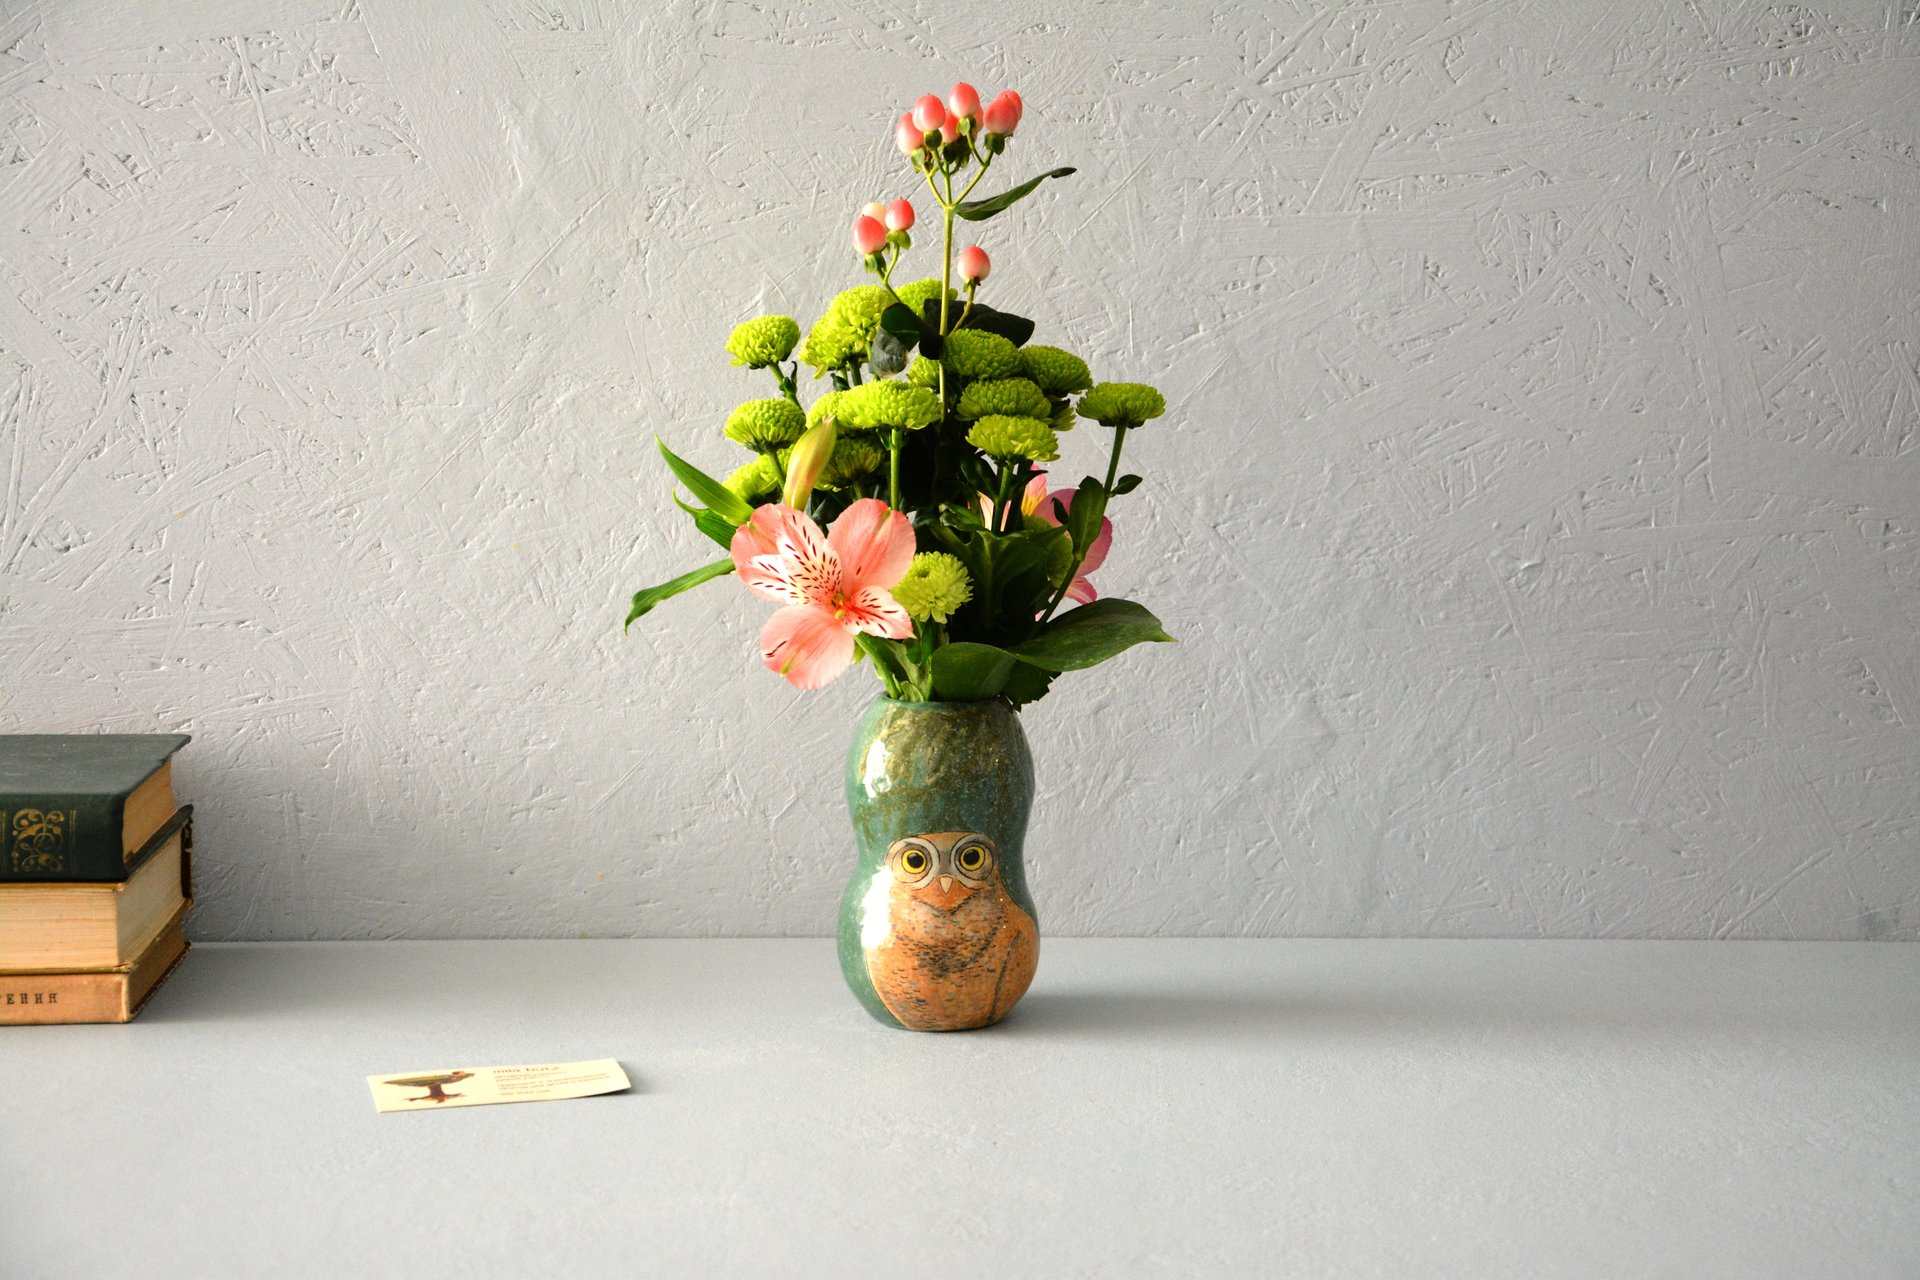 Small Vase or flowers «Burrowing owl», height - 13 cm. Photo 579.